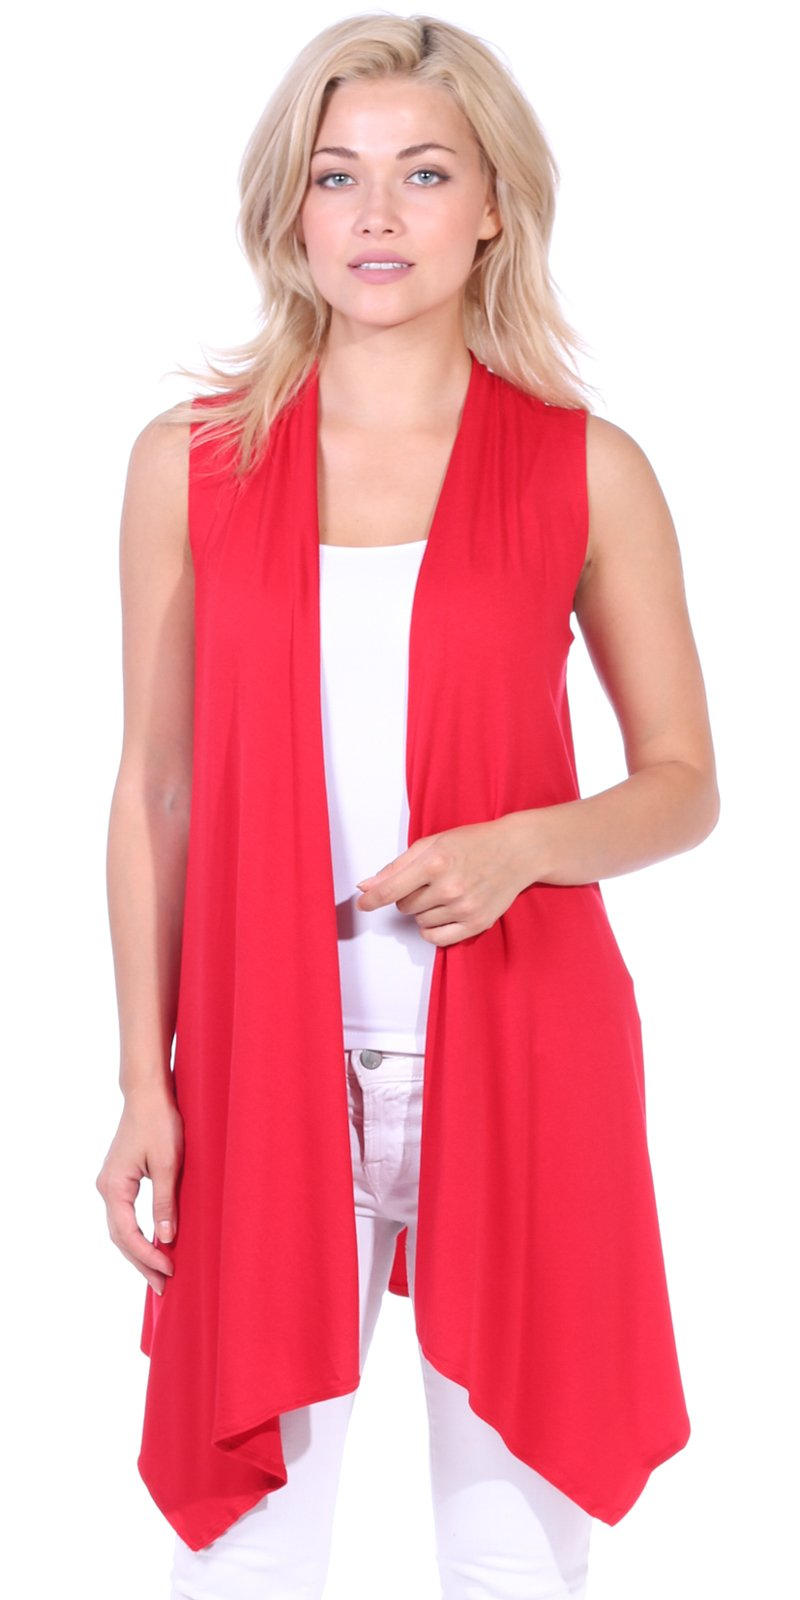 Popana Women's Casual Sleeveless Long Duster Cardigan Summer Vest Made in USA X-Large Red